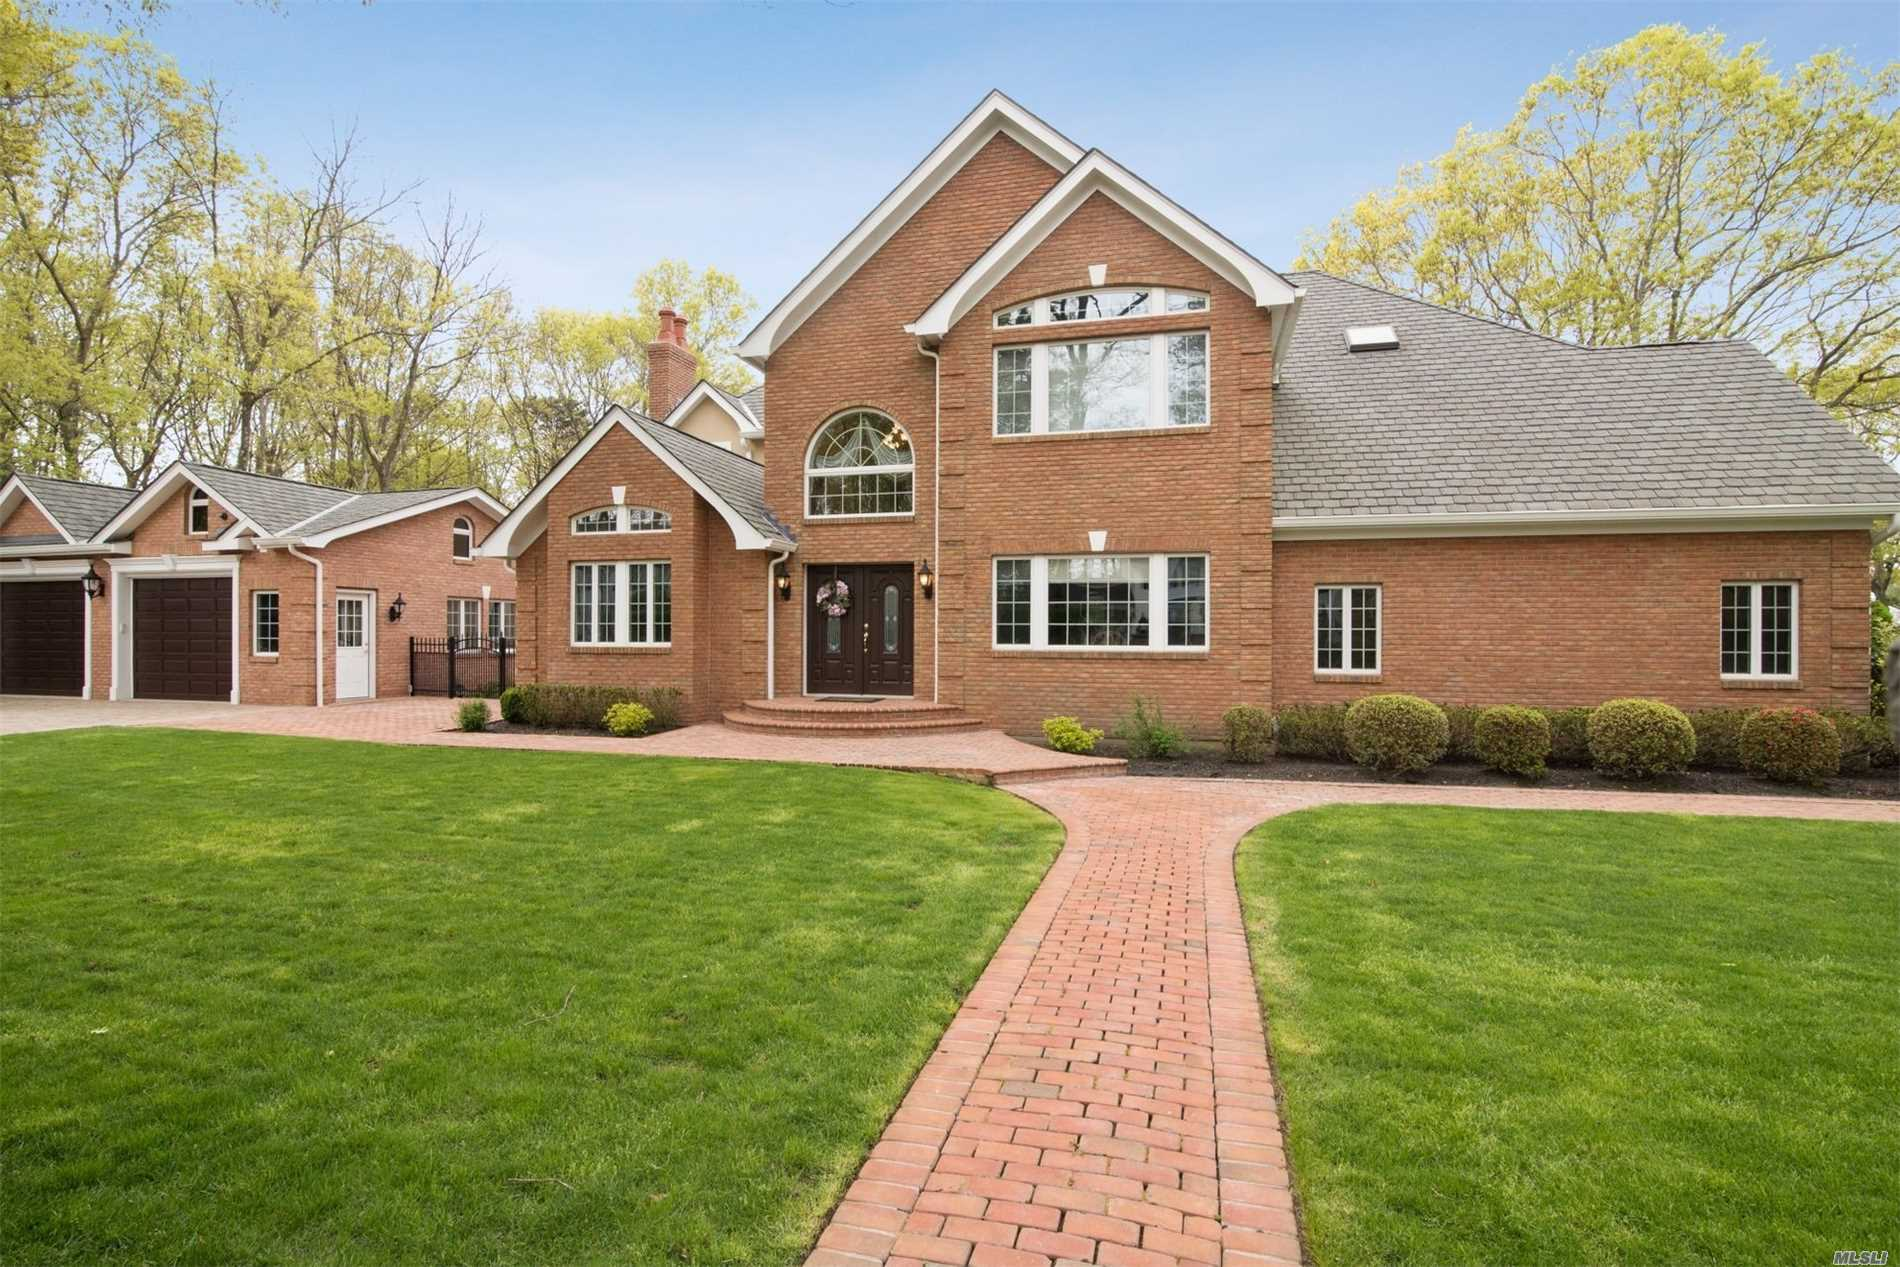 Magnificent 5 Bedroom 4.5 Bath Home With Cul de Sac Location.Attn To Detail In Every Room.Beautifully Designed Custom Kitchen With Cherry Cabinets, Granite, Top Of Line Appliances, Formal Din.Rm, Family Rm W/Fp, Formal Liv Rm, Theater Room Surround Sound, Room For Au- Pair, Wood Floors, Custom Molding Thru-out. Master En-suite, Finished Lower Level-Play Area, Office, Bar, Bath, Full Walk Out.Heated Mineral Water Pool W/Waterfall, Private Yard, Detached 2.5 Garage With Lower Level Walk Out Perfect For Storage.